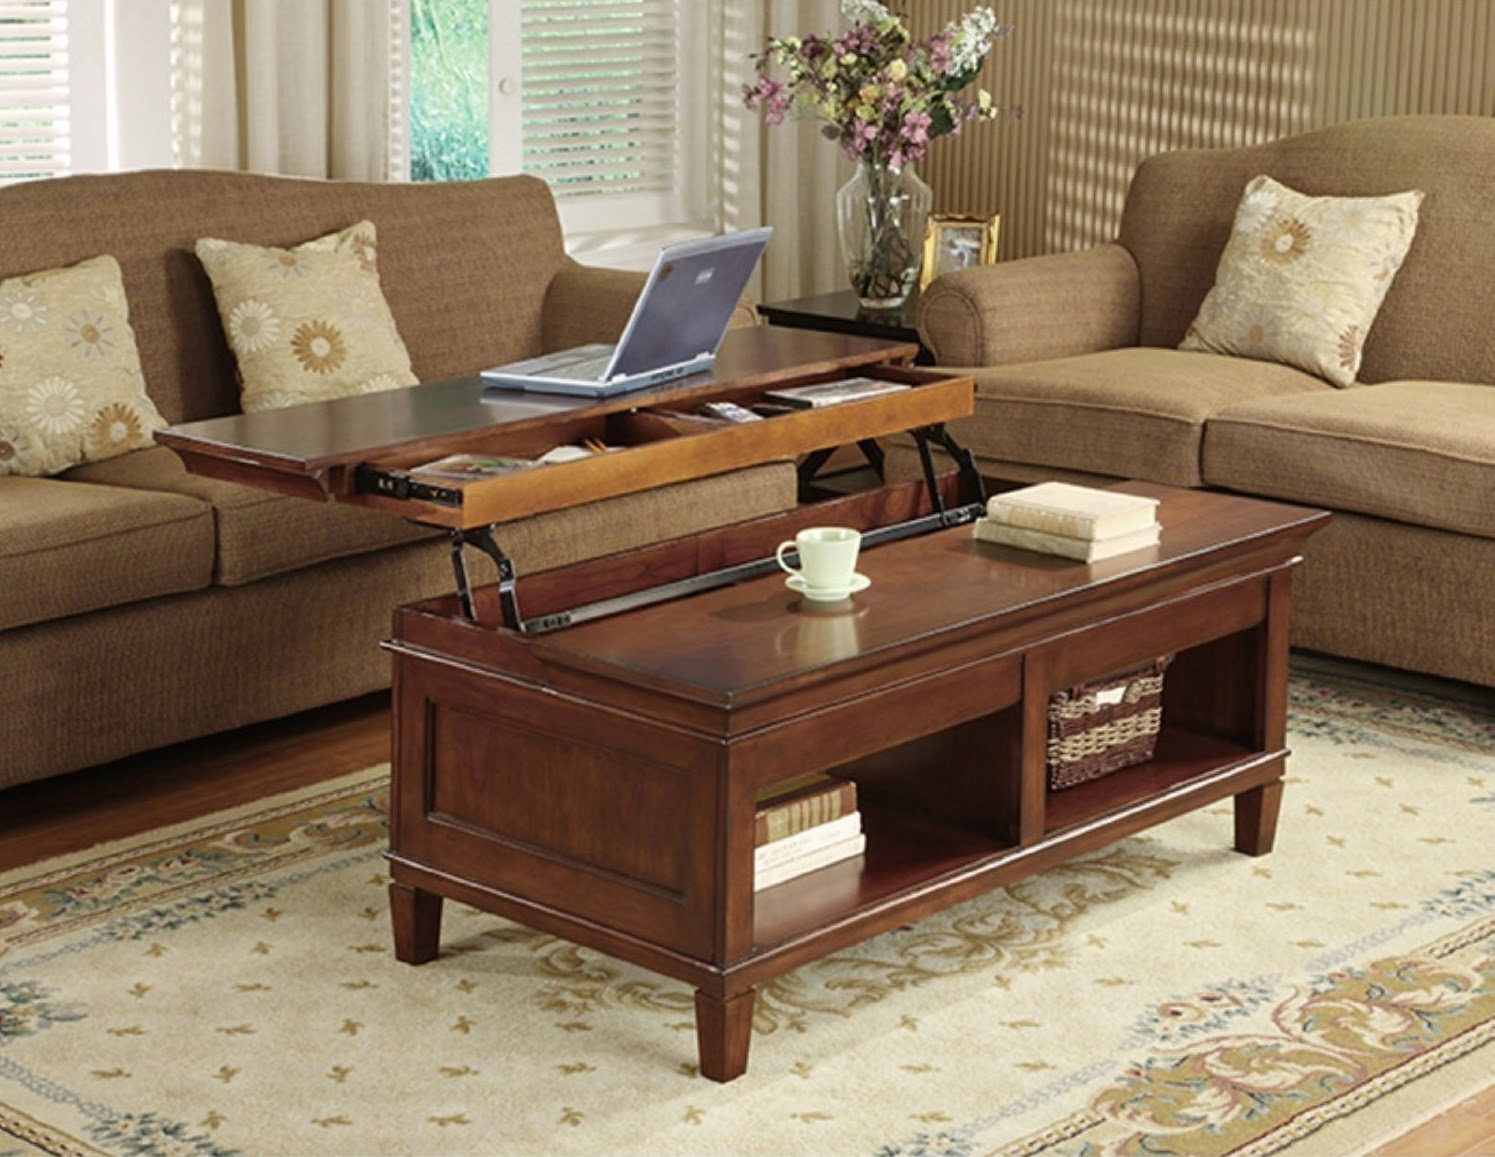 Fascinating Lift Top Coffee Tables For Your Dining Room Home Design And Wedding Ideas